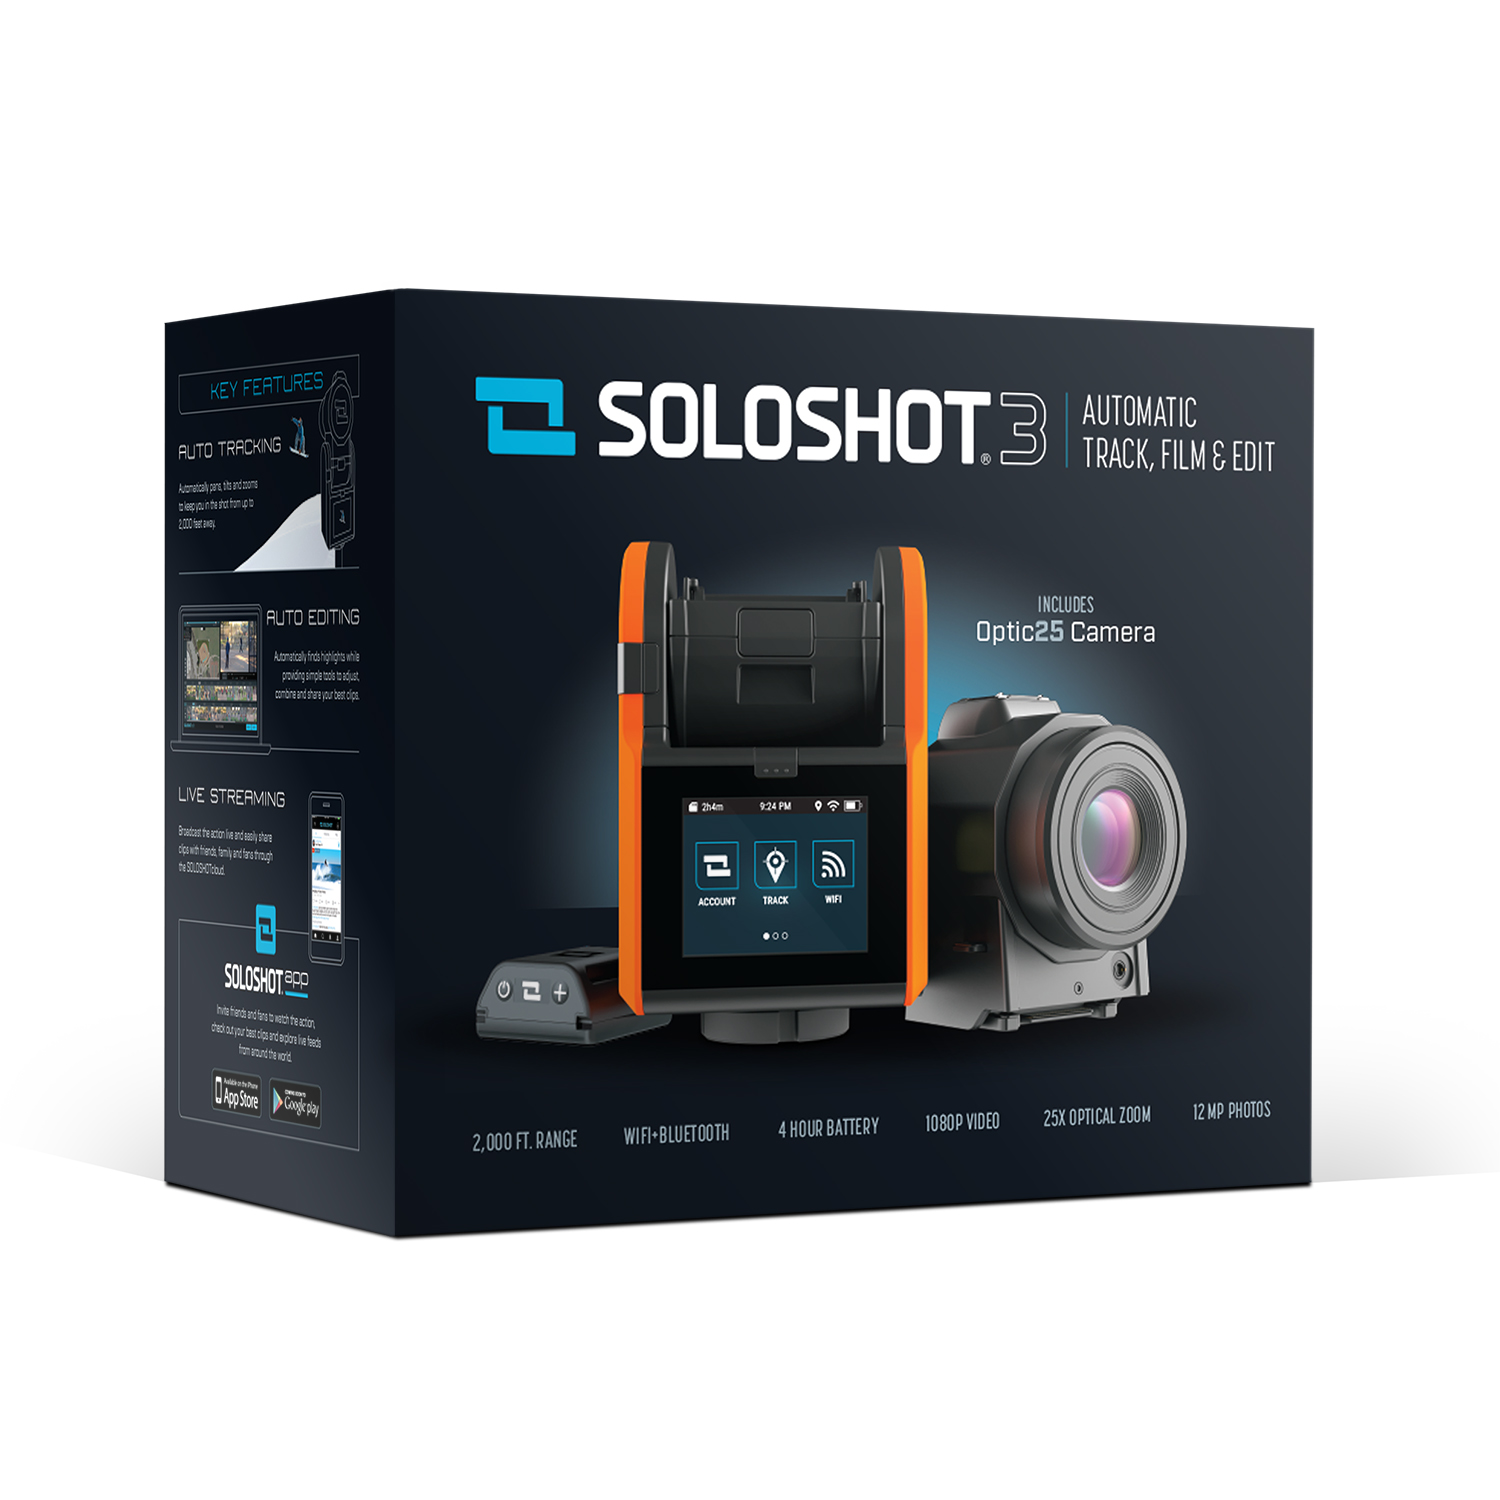 SOLOSHOT3 Optic25